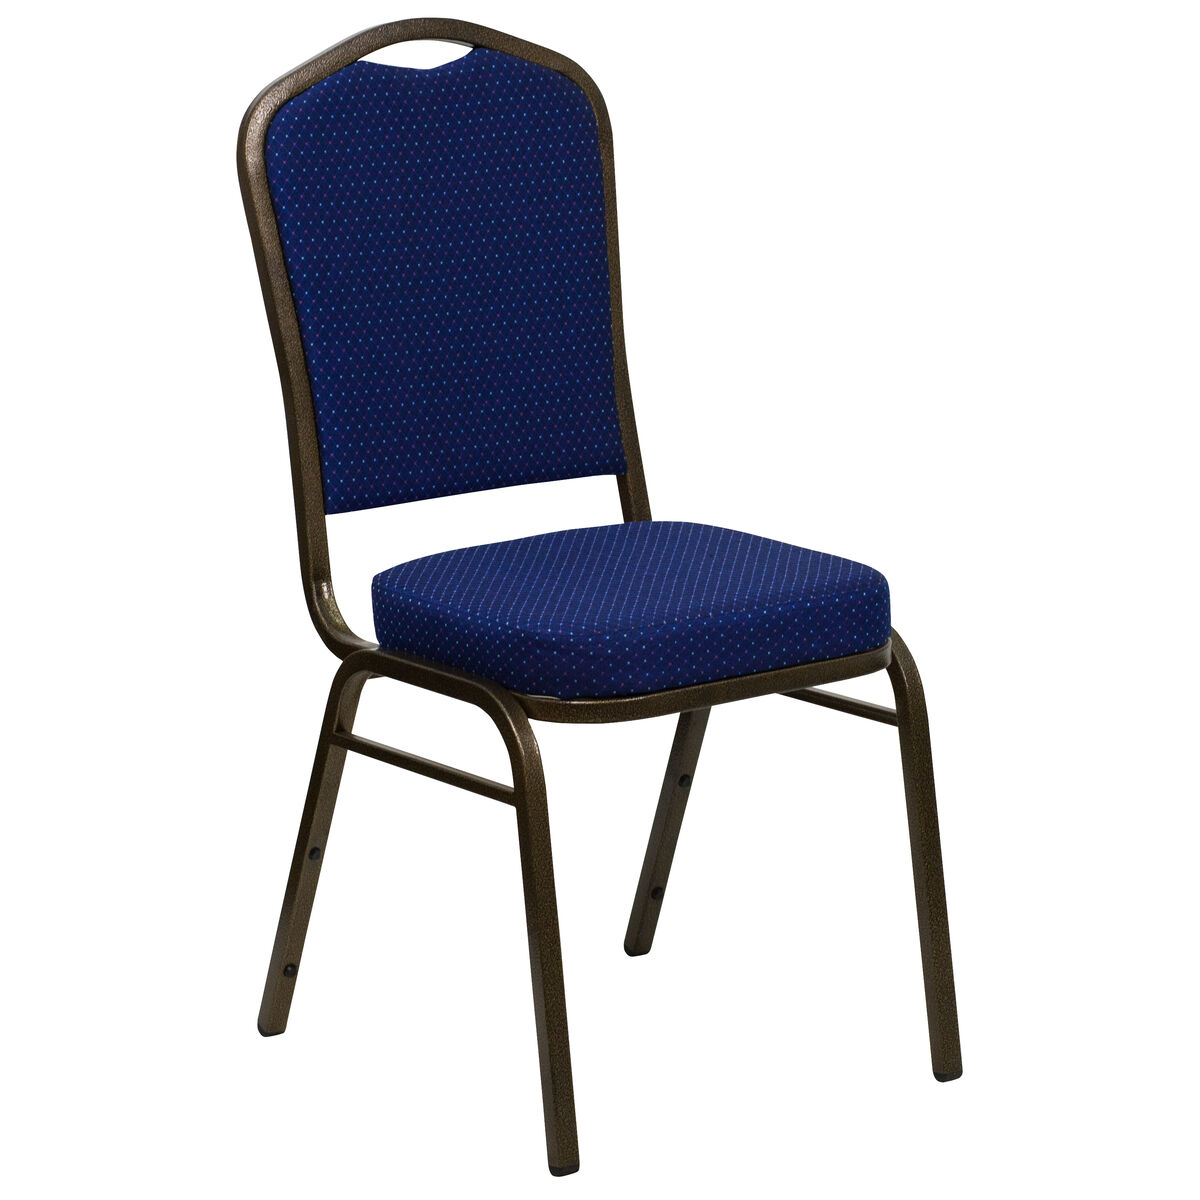 Crown Back Stacking Banquet Chair in Navy Blue Patterned Fabric - Gold Frame